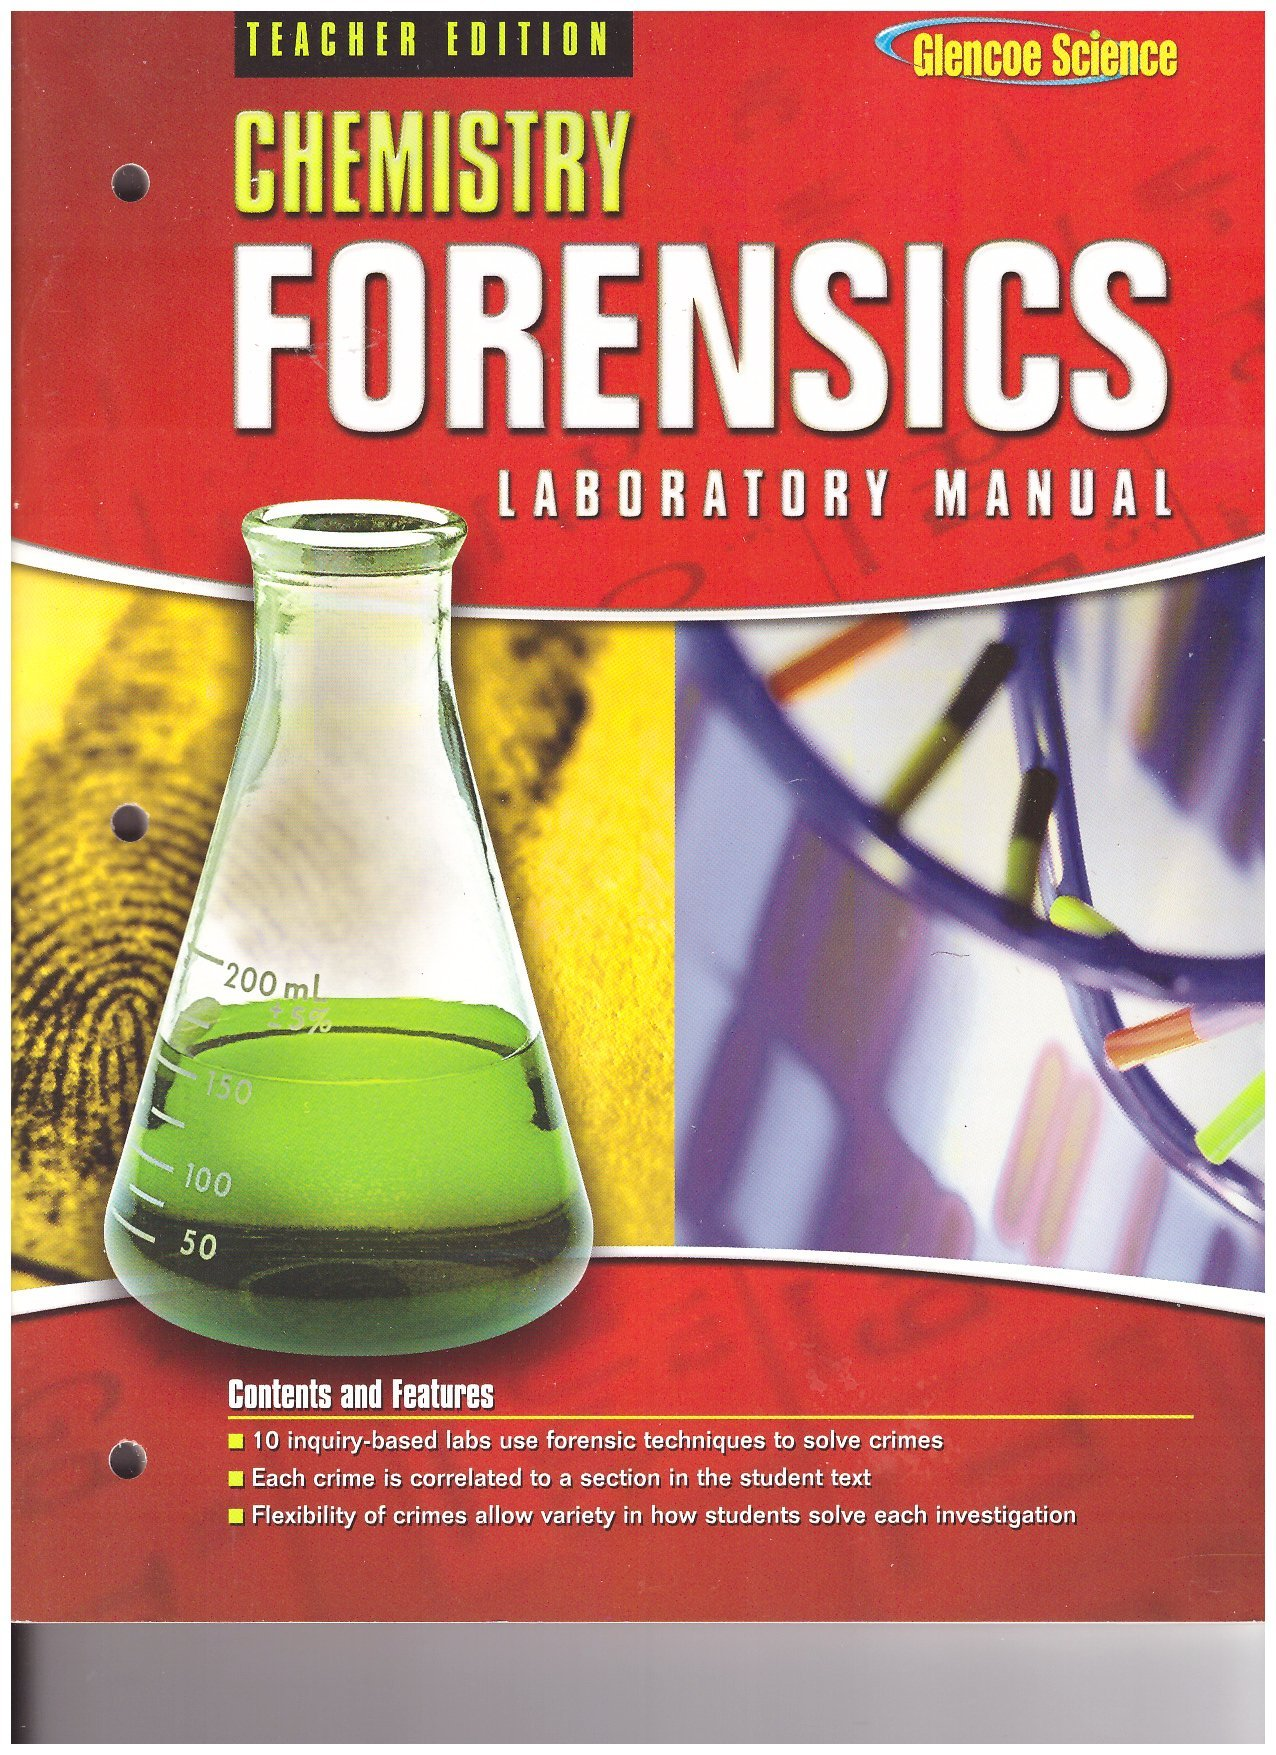 Glencoe Chemistry Forensics, Laboratory Manual Teacher Edition: Glencoe:  9780078690921: Amazon.com: Books